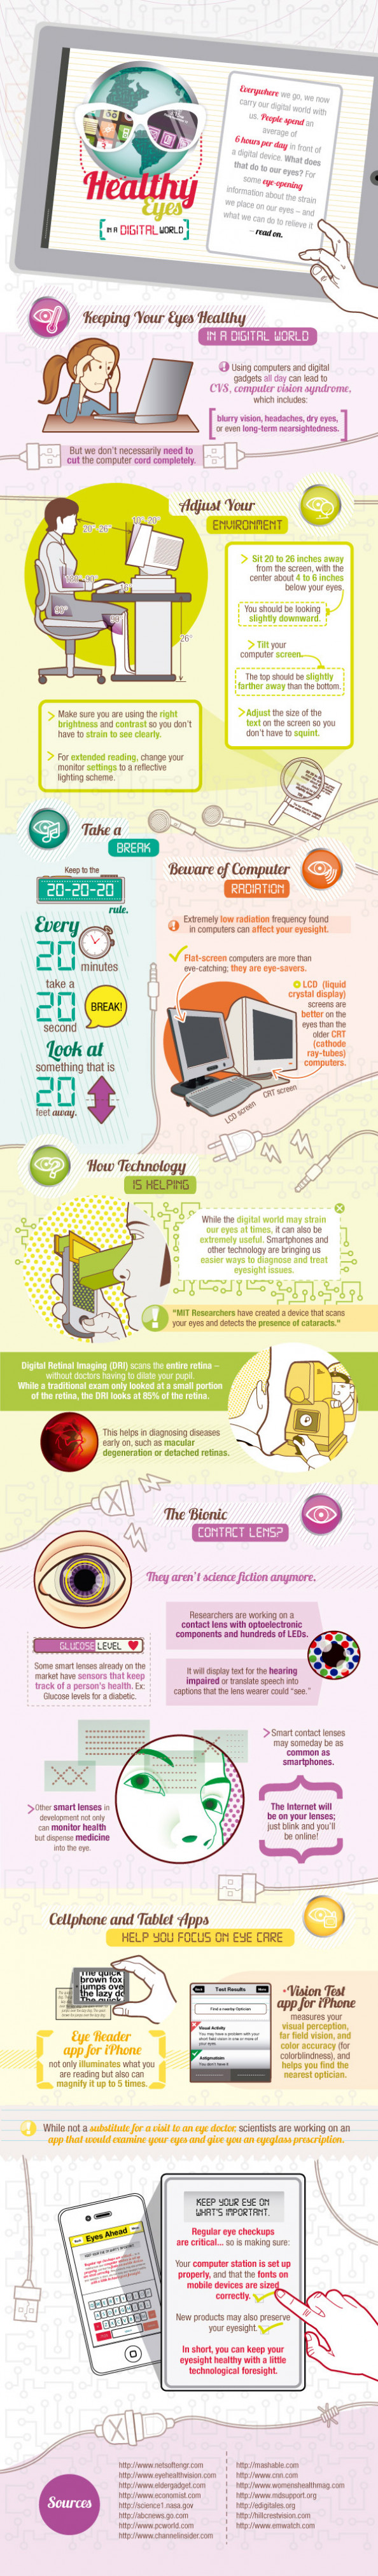 How to Keep Eyes Healthy in Digital World?  Infographic